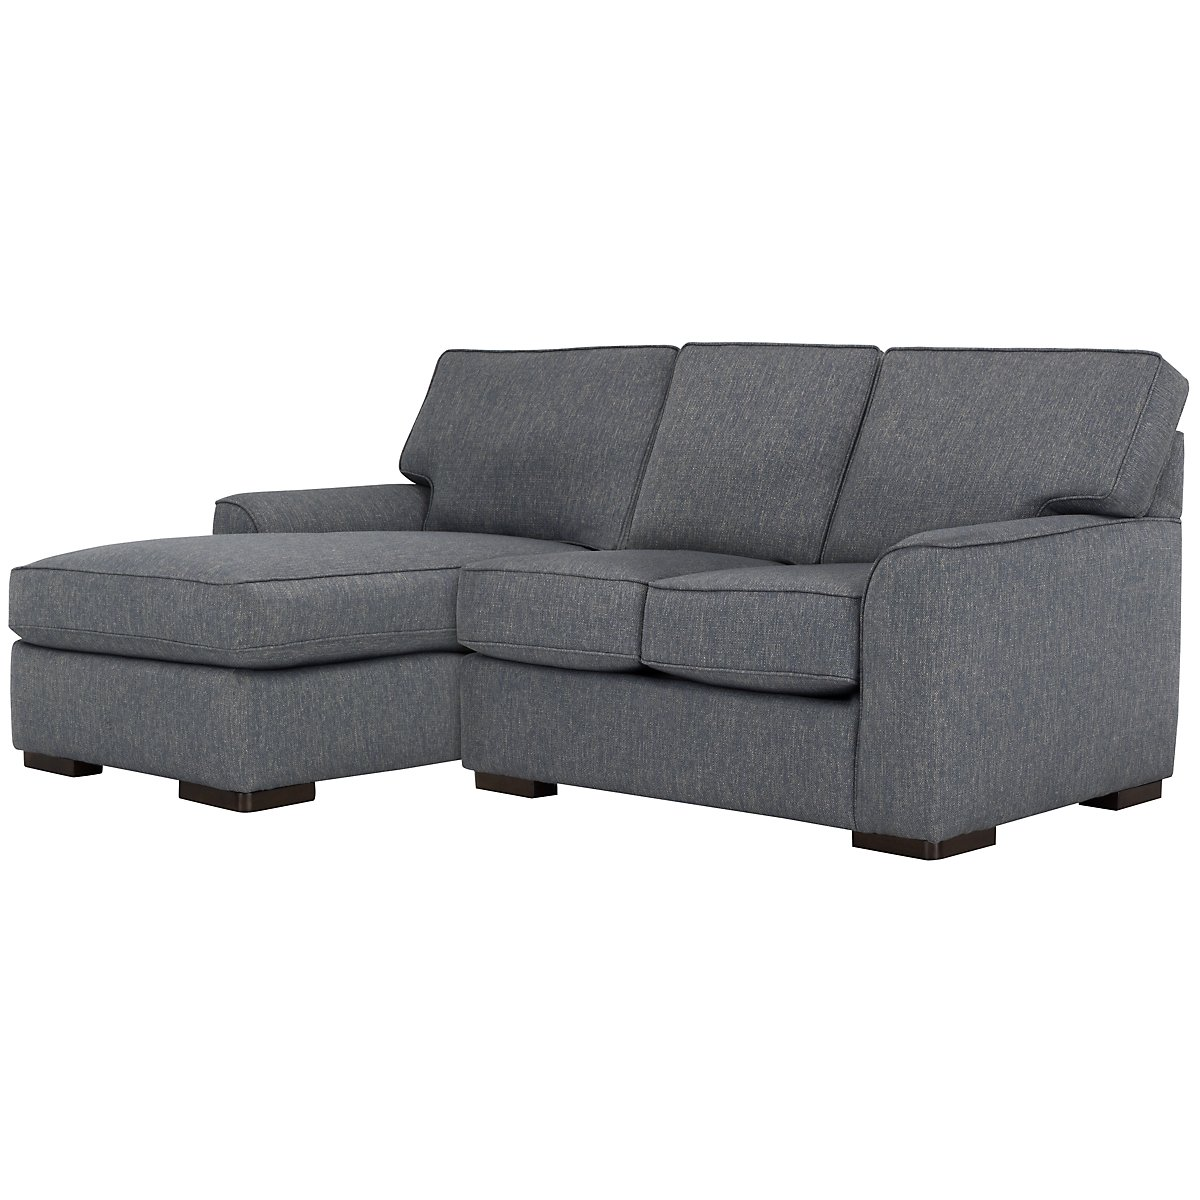 City furniture austin blue fabric left chaise sectional for Blue sectional sofa with chaise